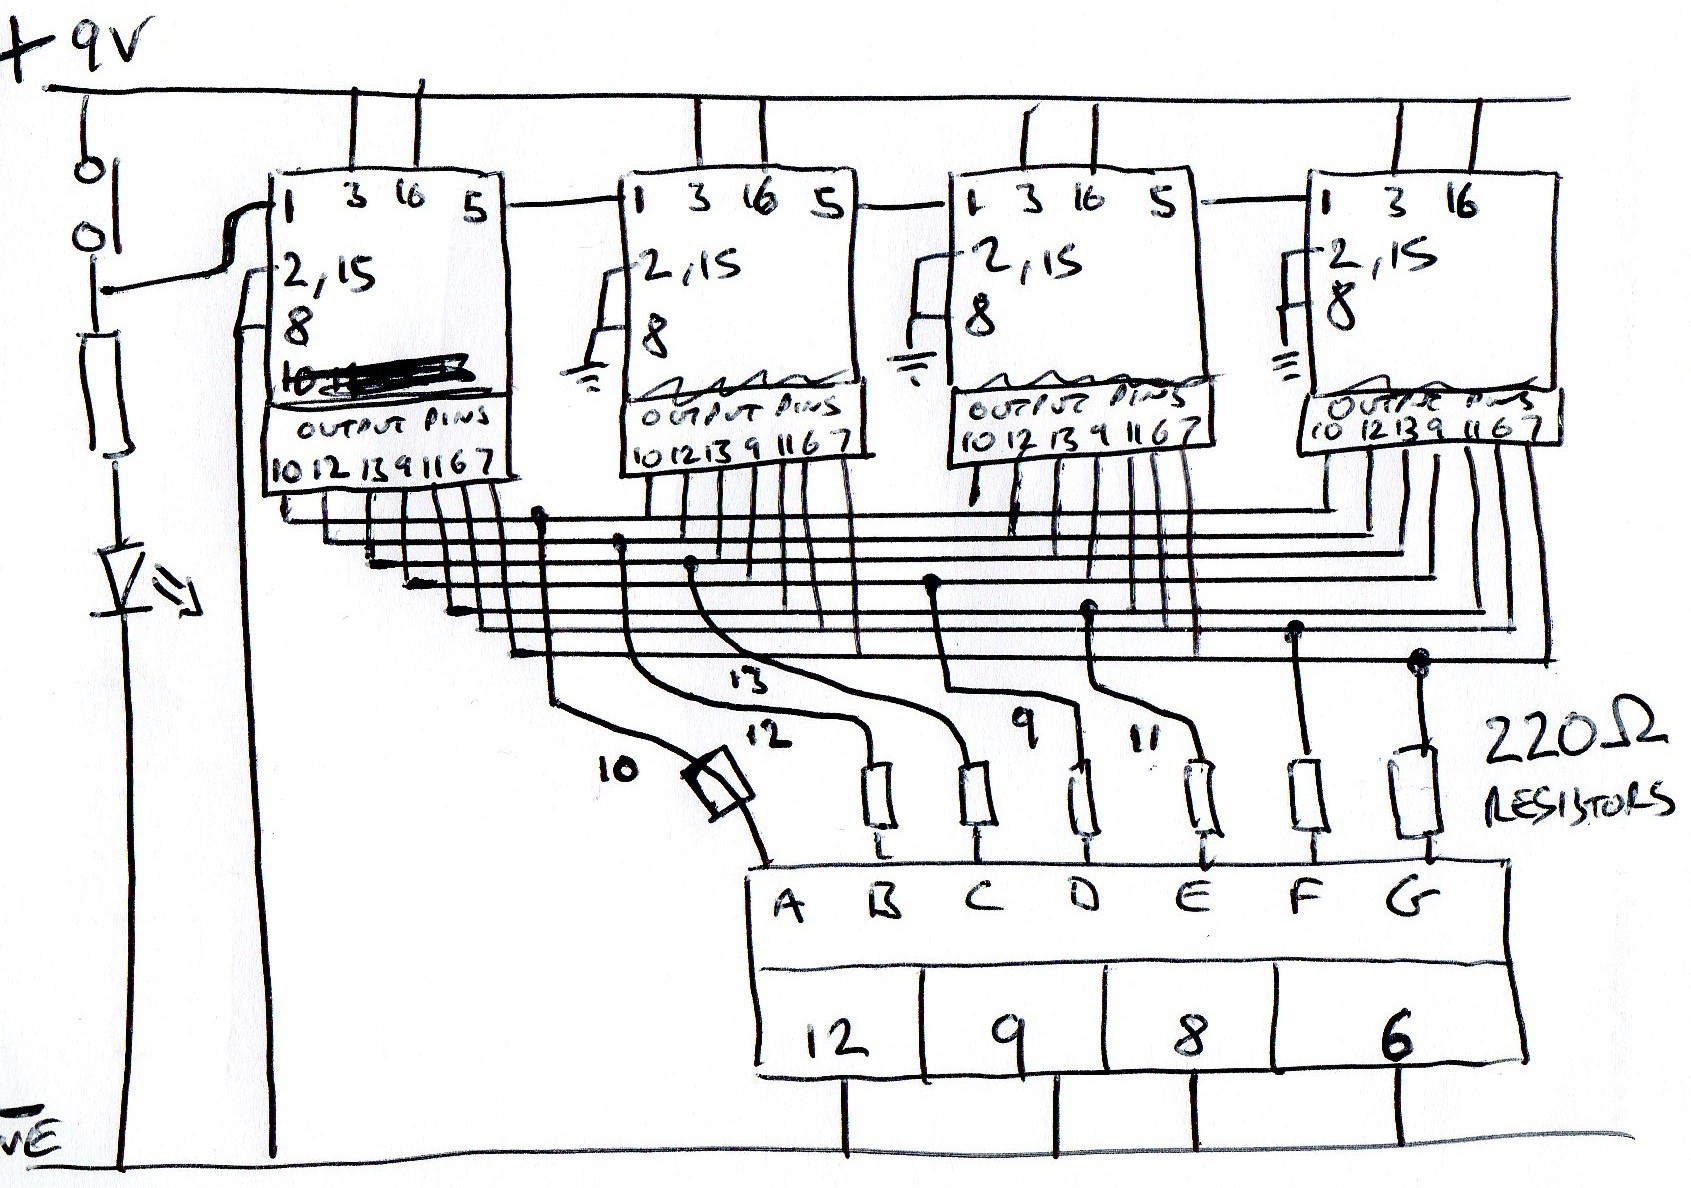 7 Segment Display Clock Circuit Diagram Wiring Image Driver Multiplexer 4 Digit Cc All Digits Count The Same Rh Electronics Stackexchange 4026 Counter Circuits